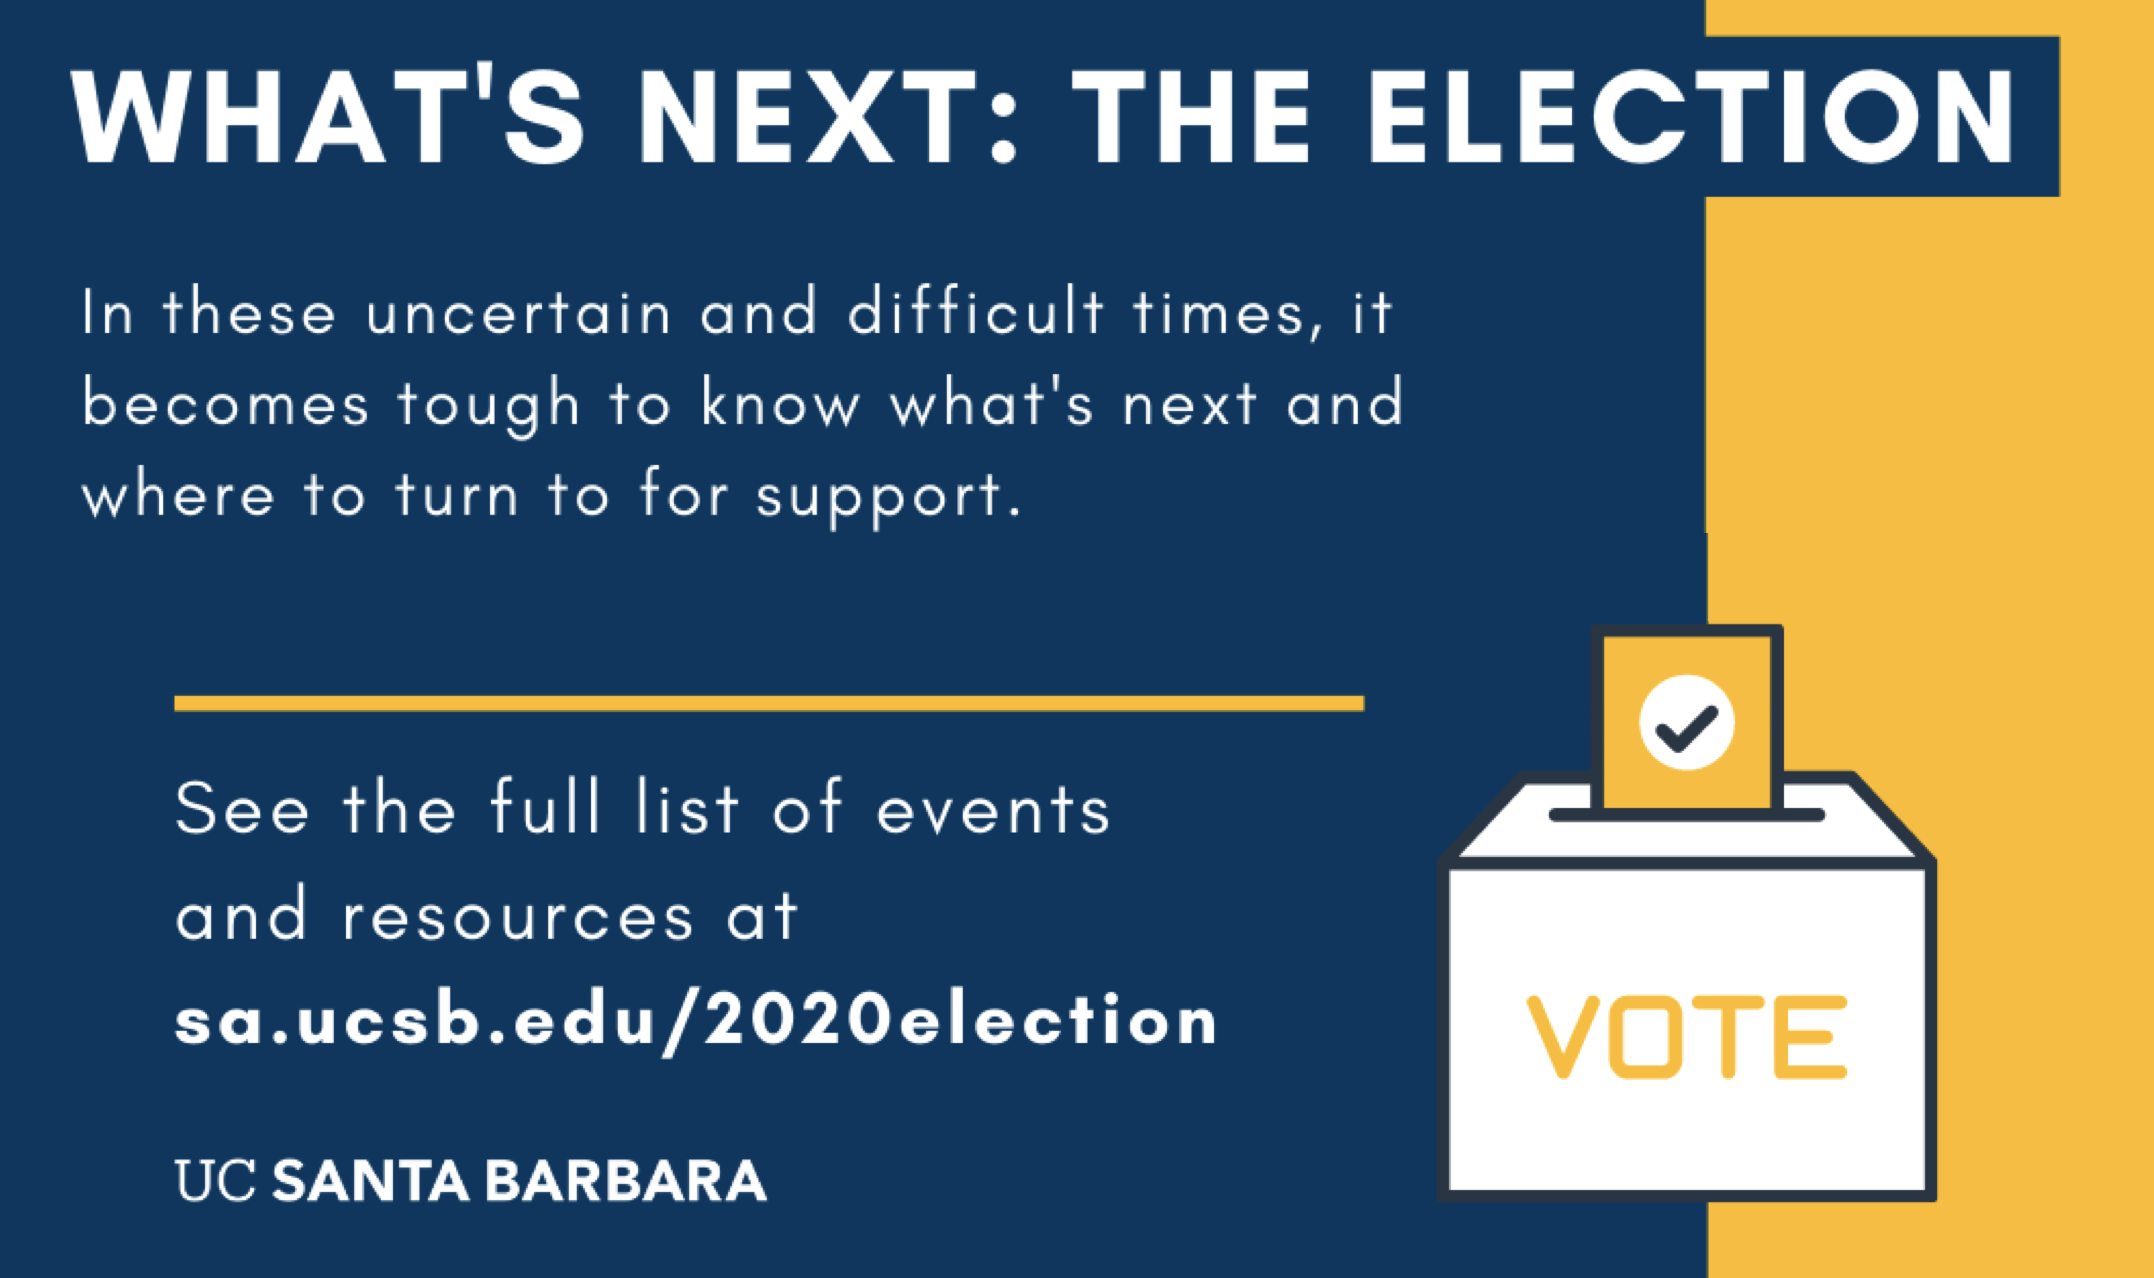 Election Events and Resources